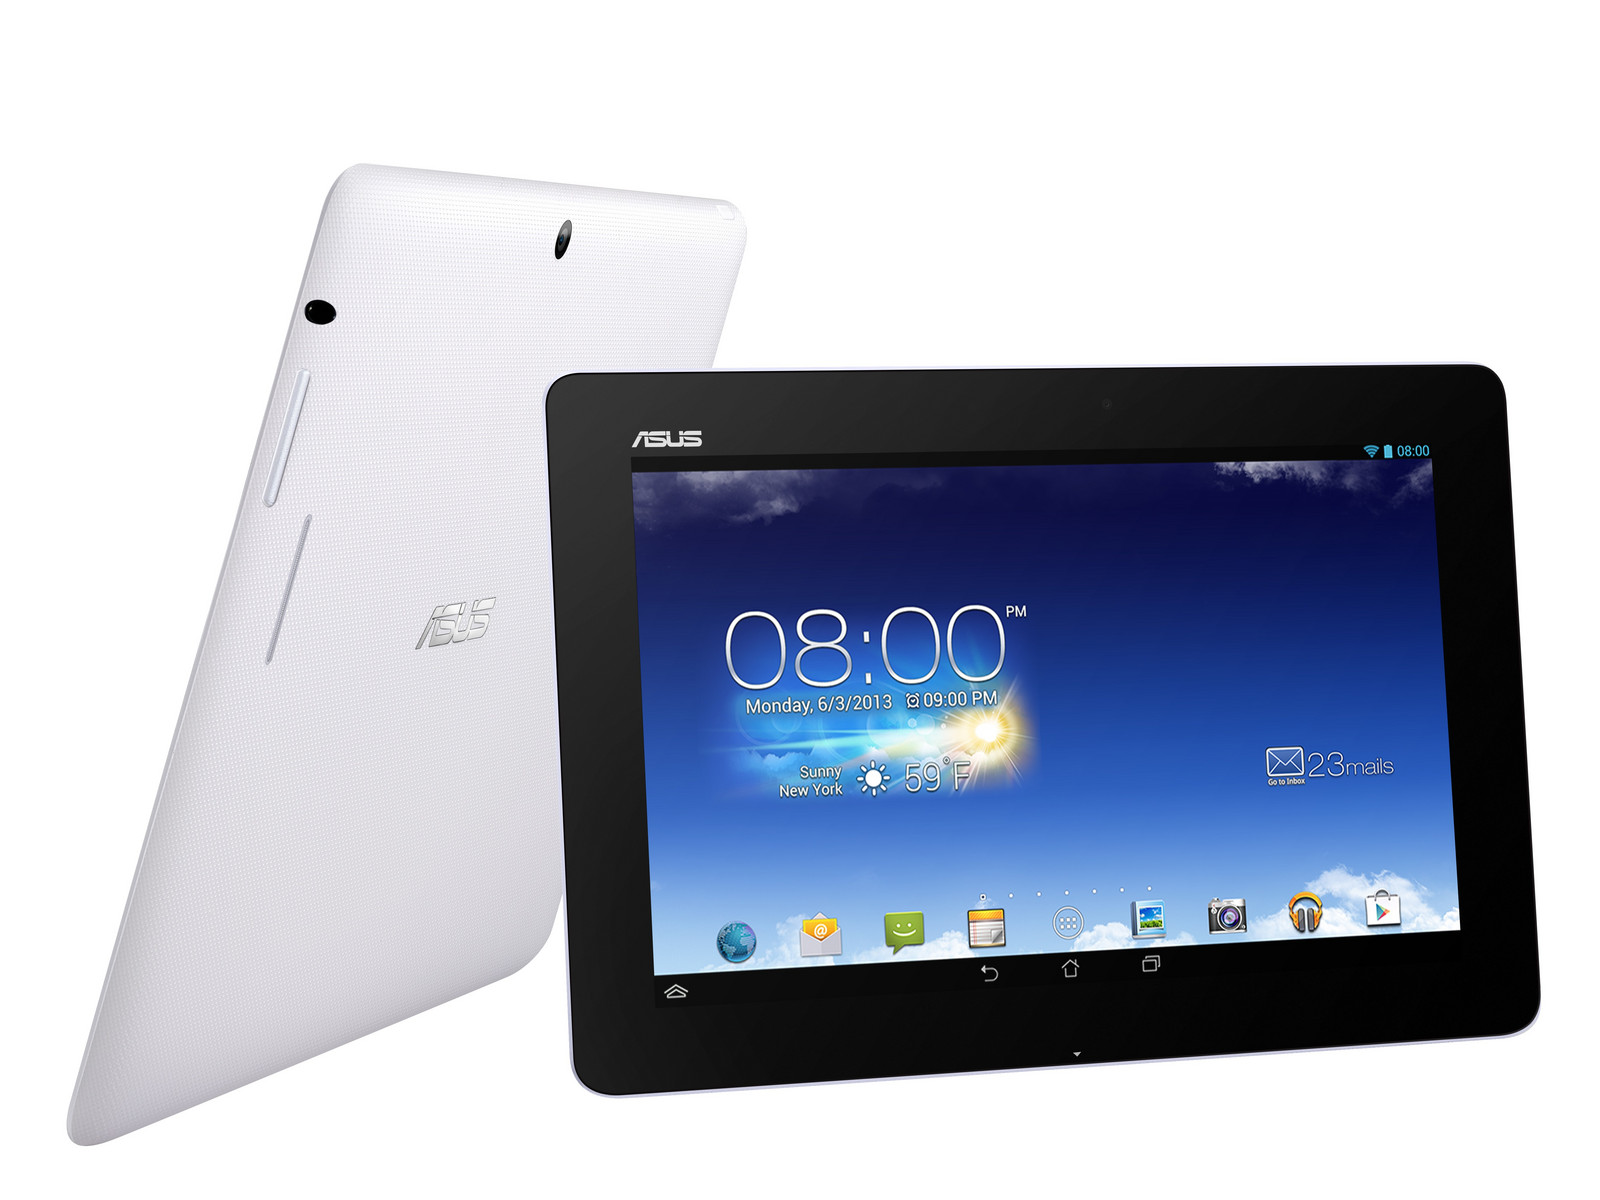 How to Root Asus Memo Pad FHD10 with Magisk without TWRP